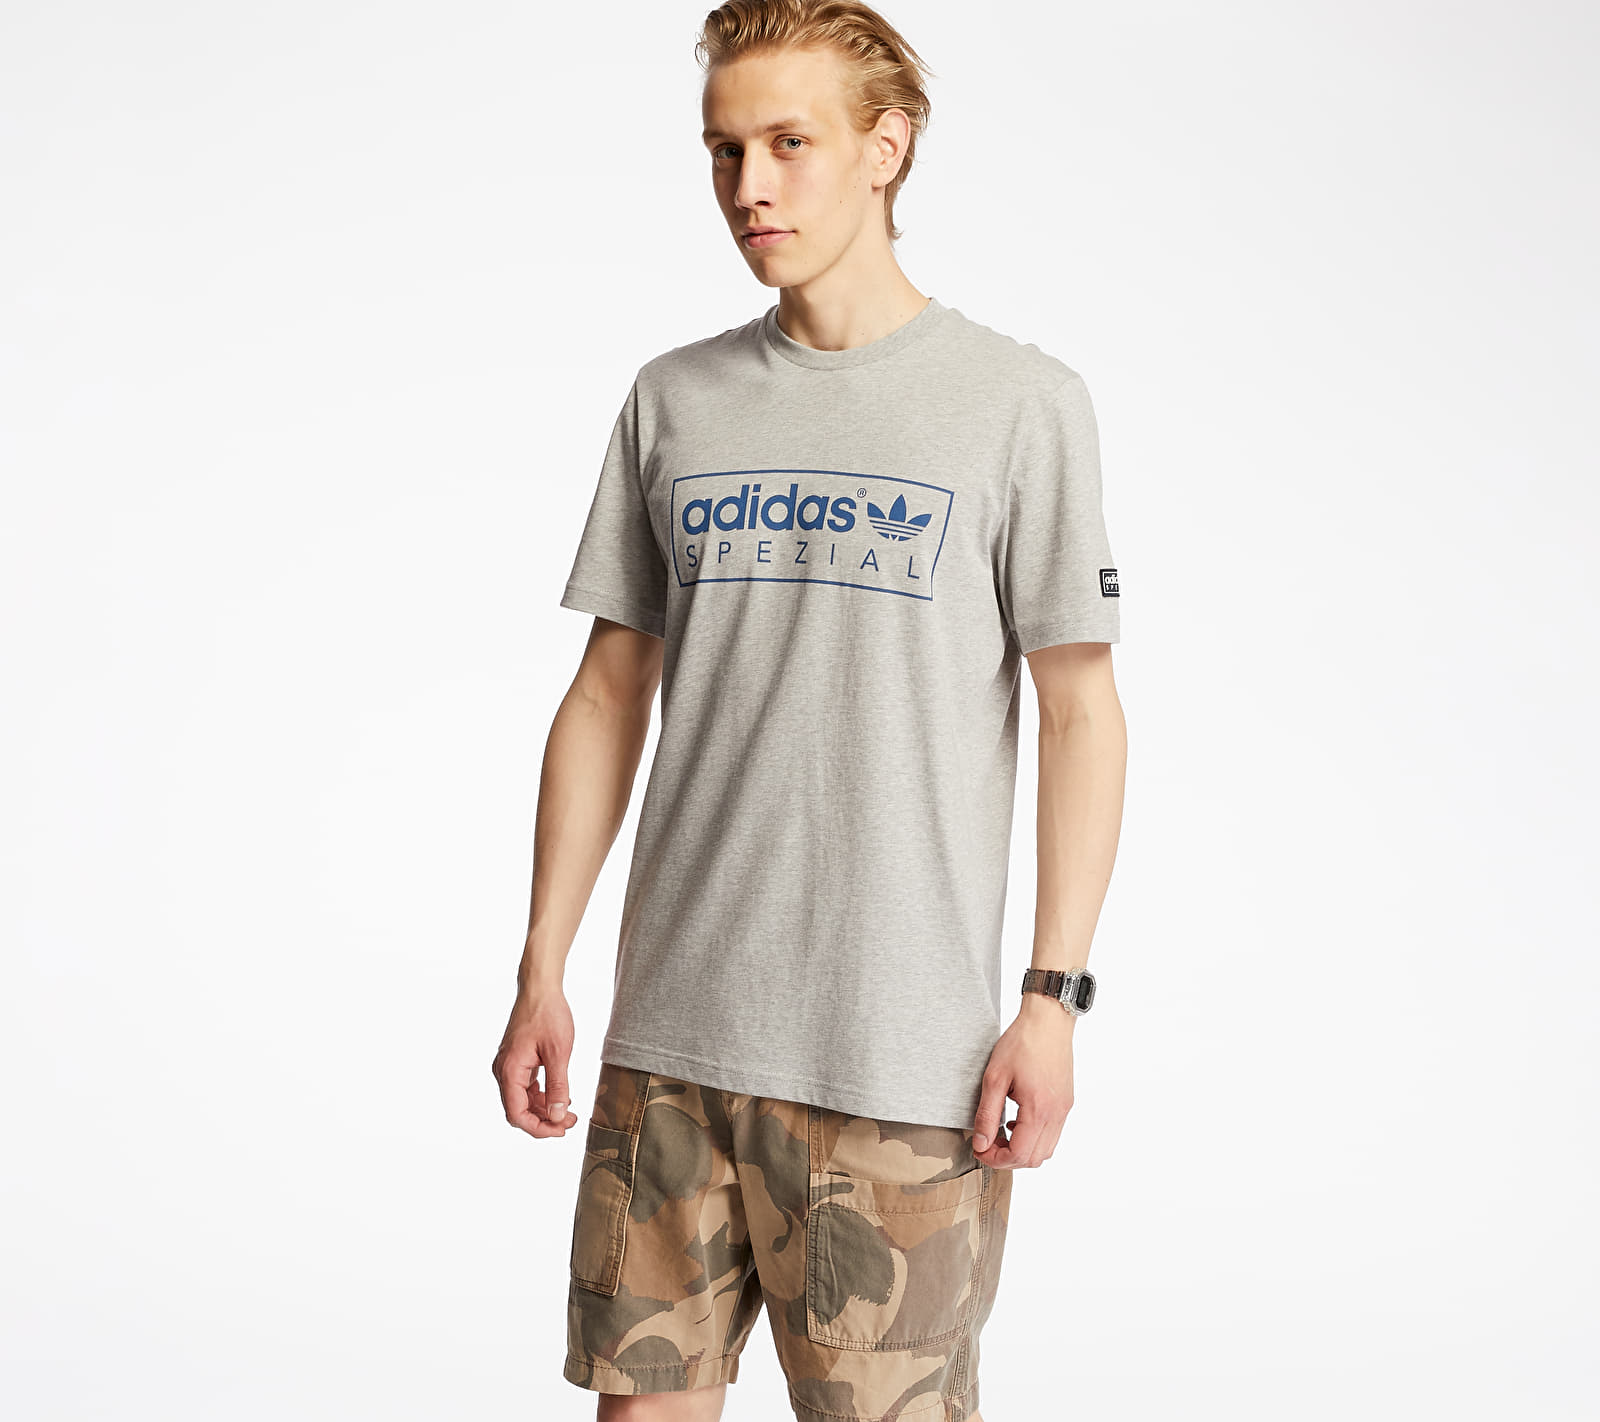 adidas McLoughlin Tee Grey, Gray